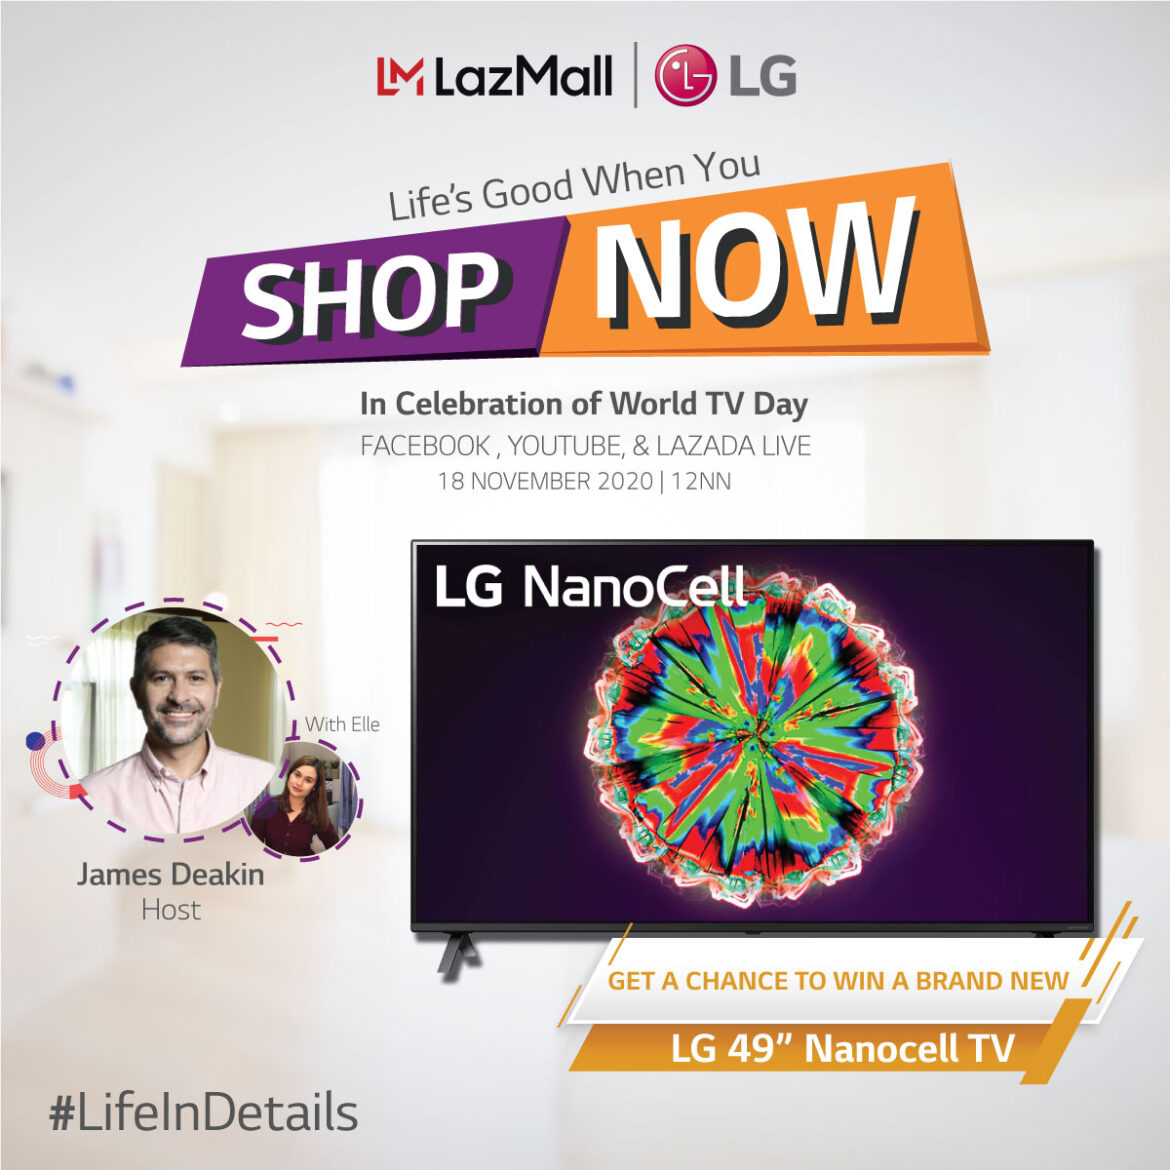 LG Celebrates World TV Day